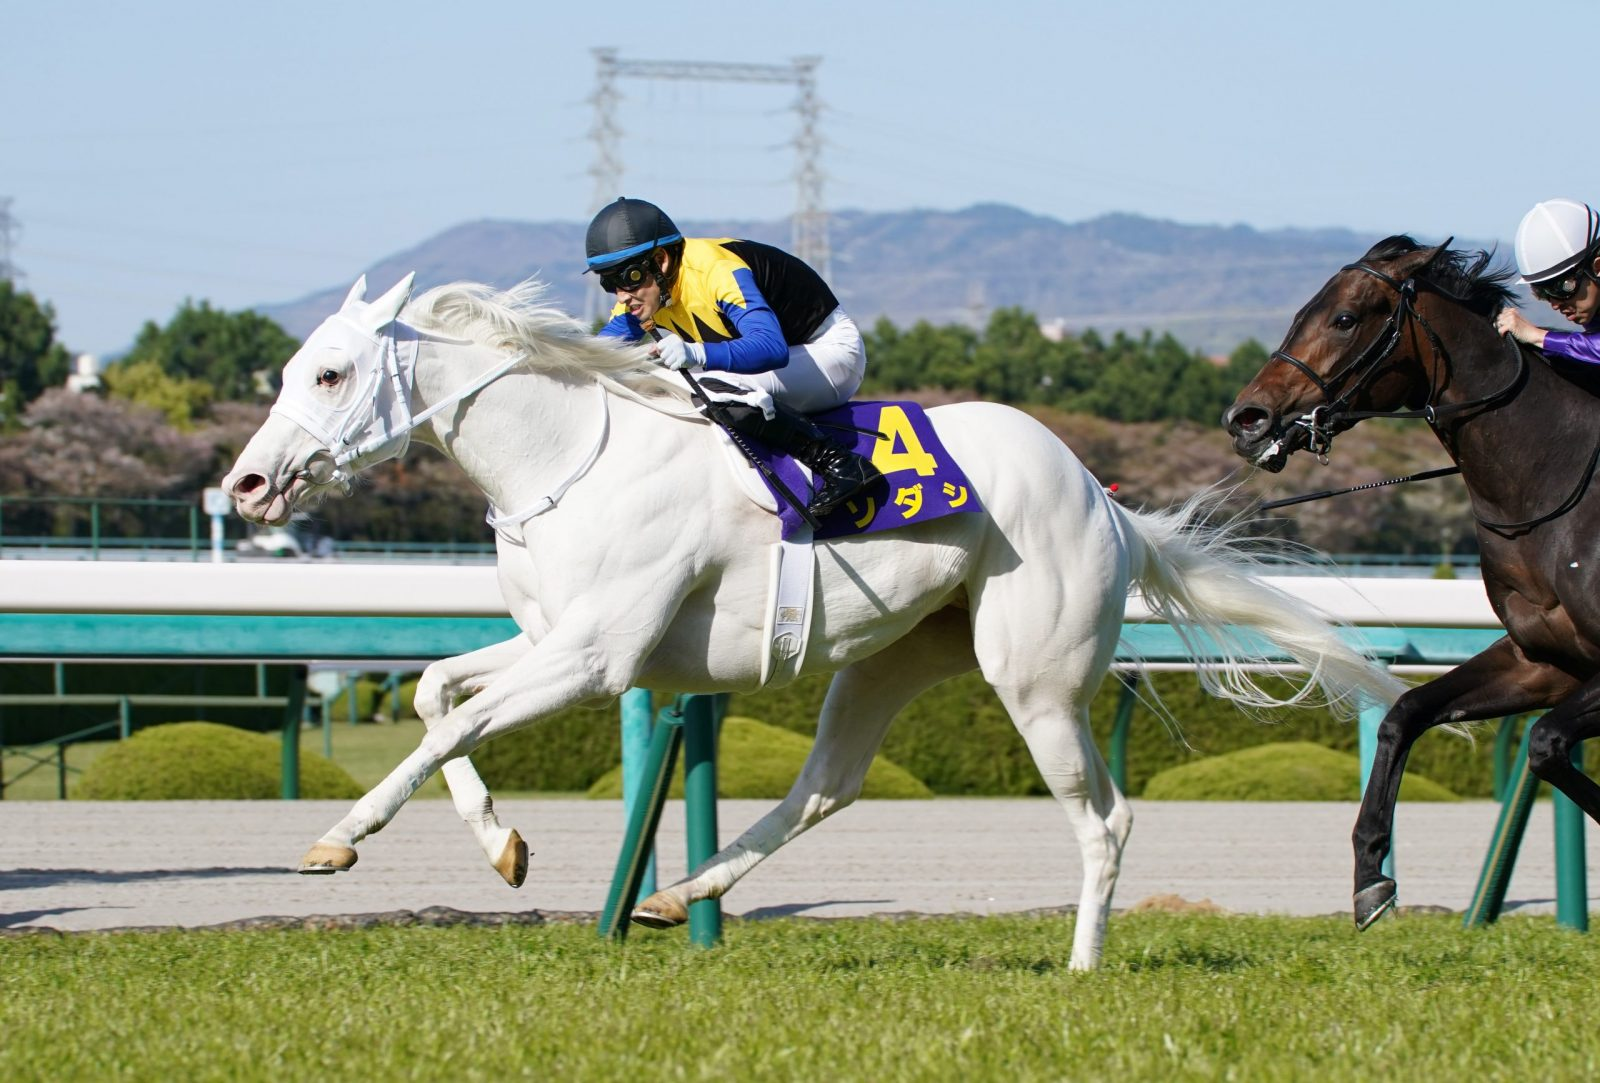 HORSE RACING | Sodashi Bests Field in Oka Sho, Becomes First White Thoroughbred to Win a JRA Classic Race | JAPAN Forward